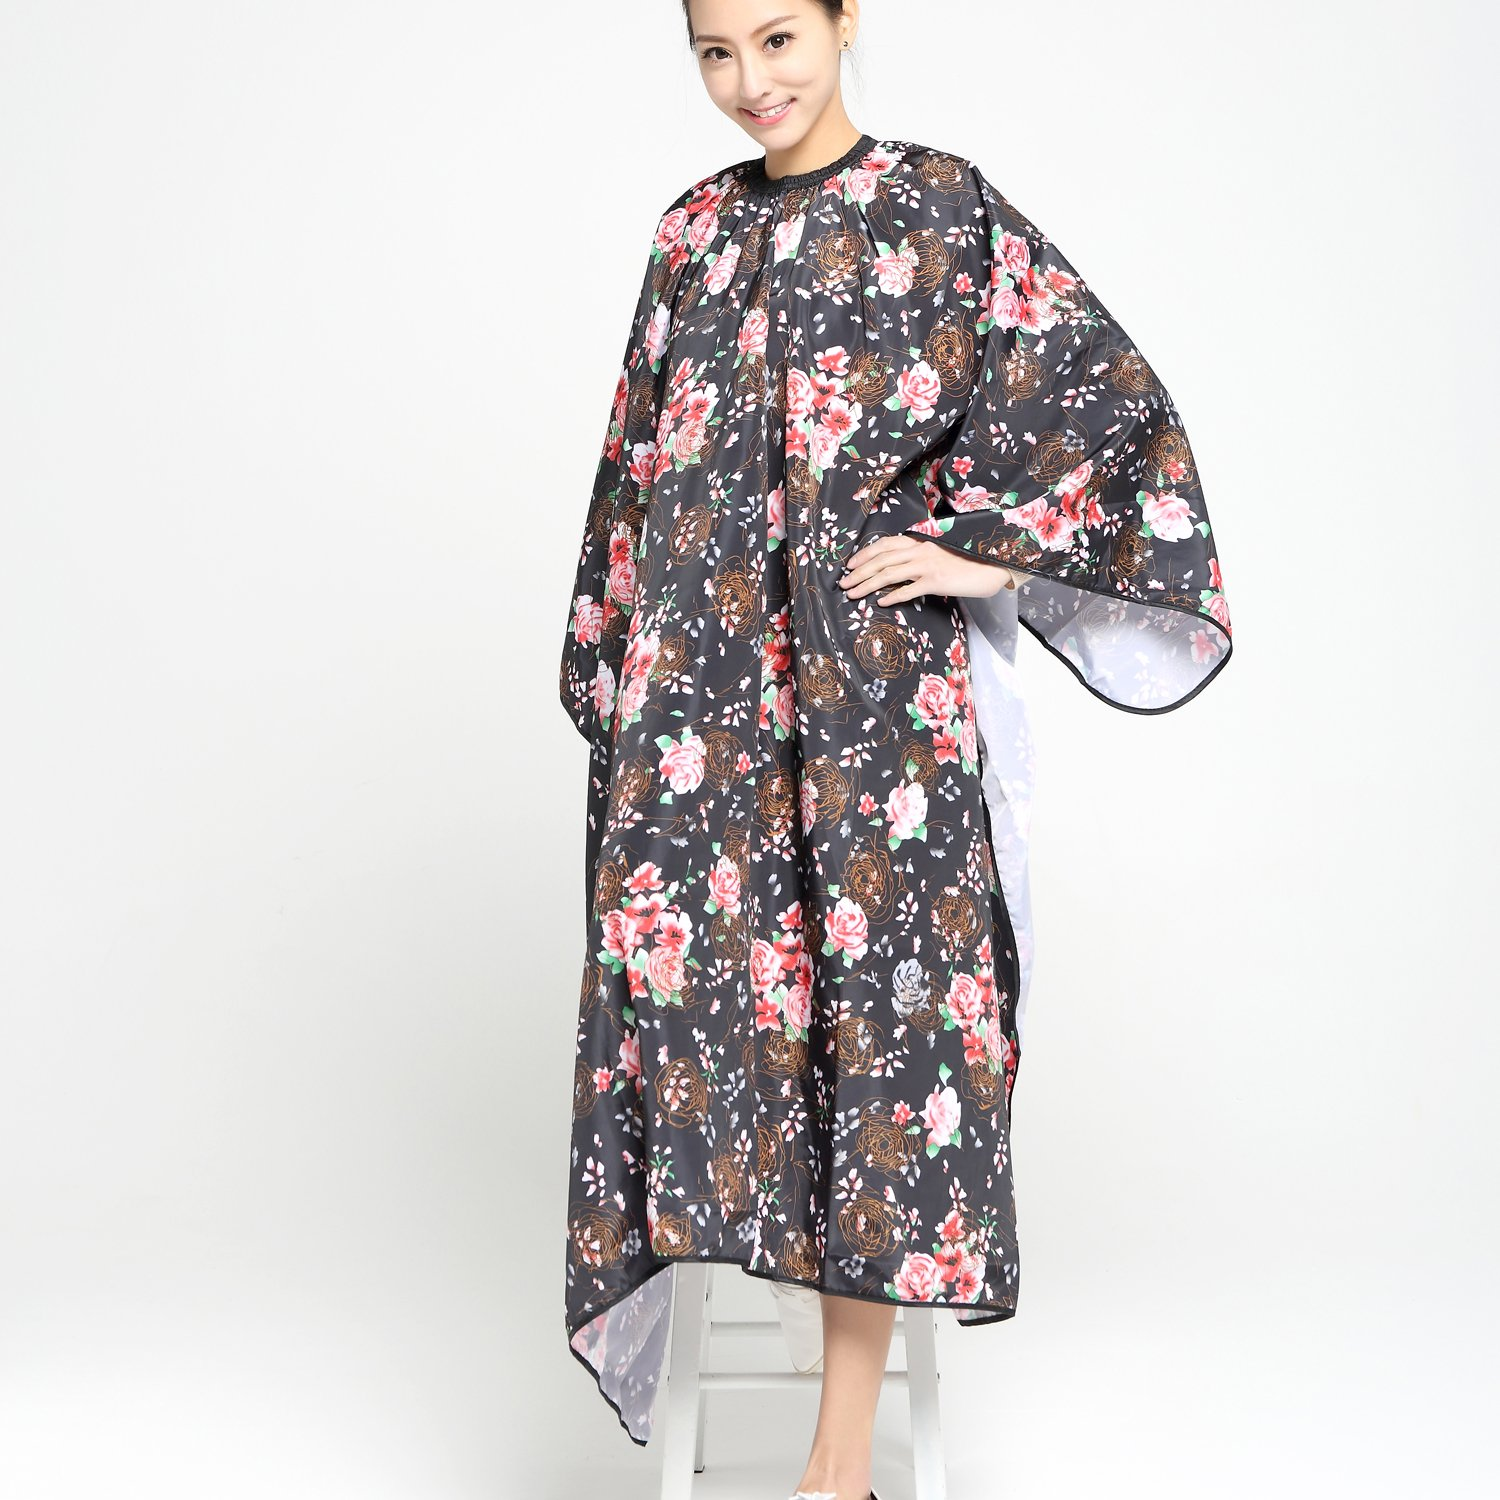 Salon Professional Hair Styling Cape,Colorfulife Hair Cutting Rose Flower Bronzing Waterproof Hairdresser Wai Cloth Barber Gown Hairdressing Wrap,55''x63'' K064 (Rose) by Colorfulife (Image #5)